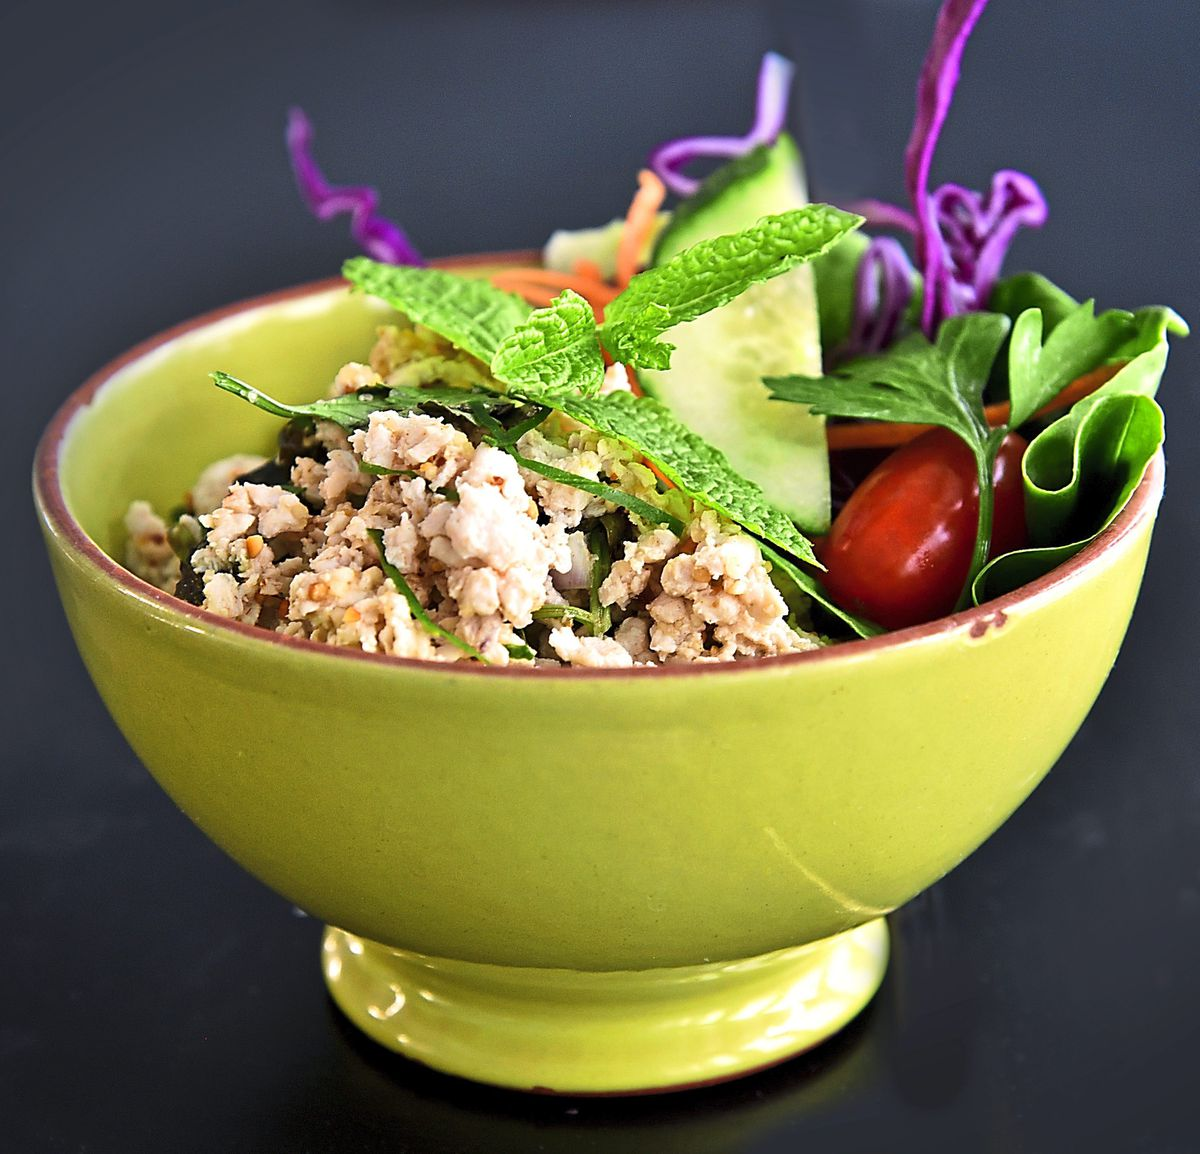 Minced chicken with lettuce